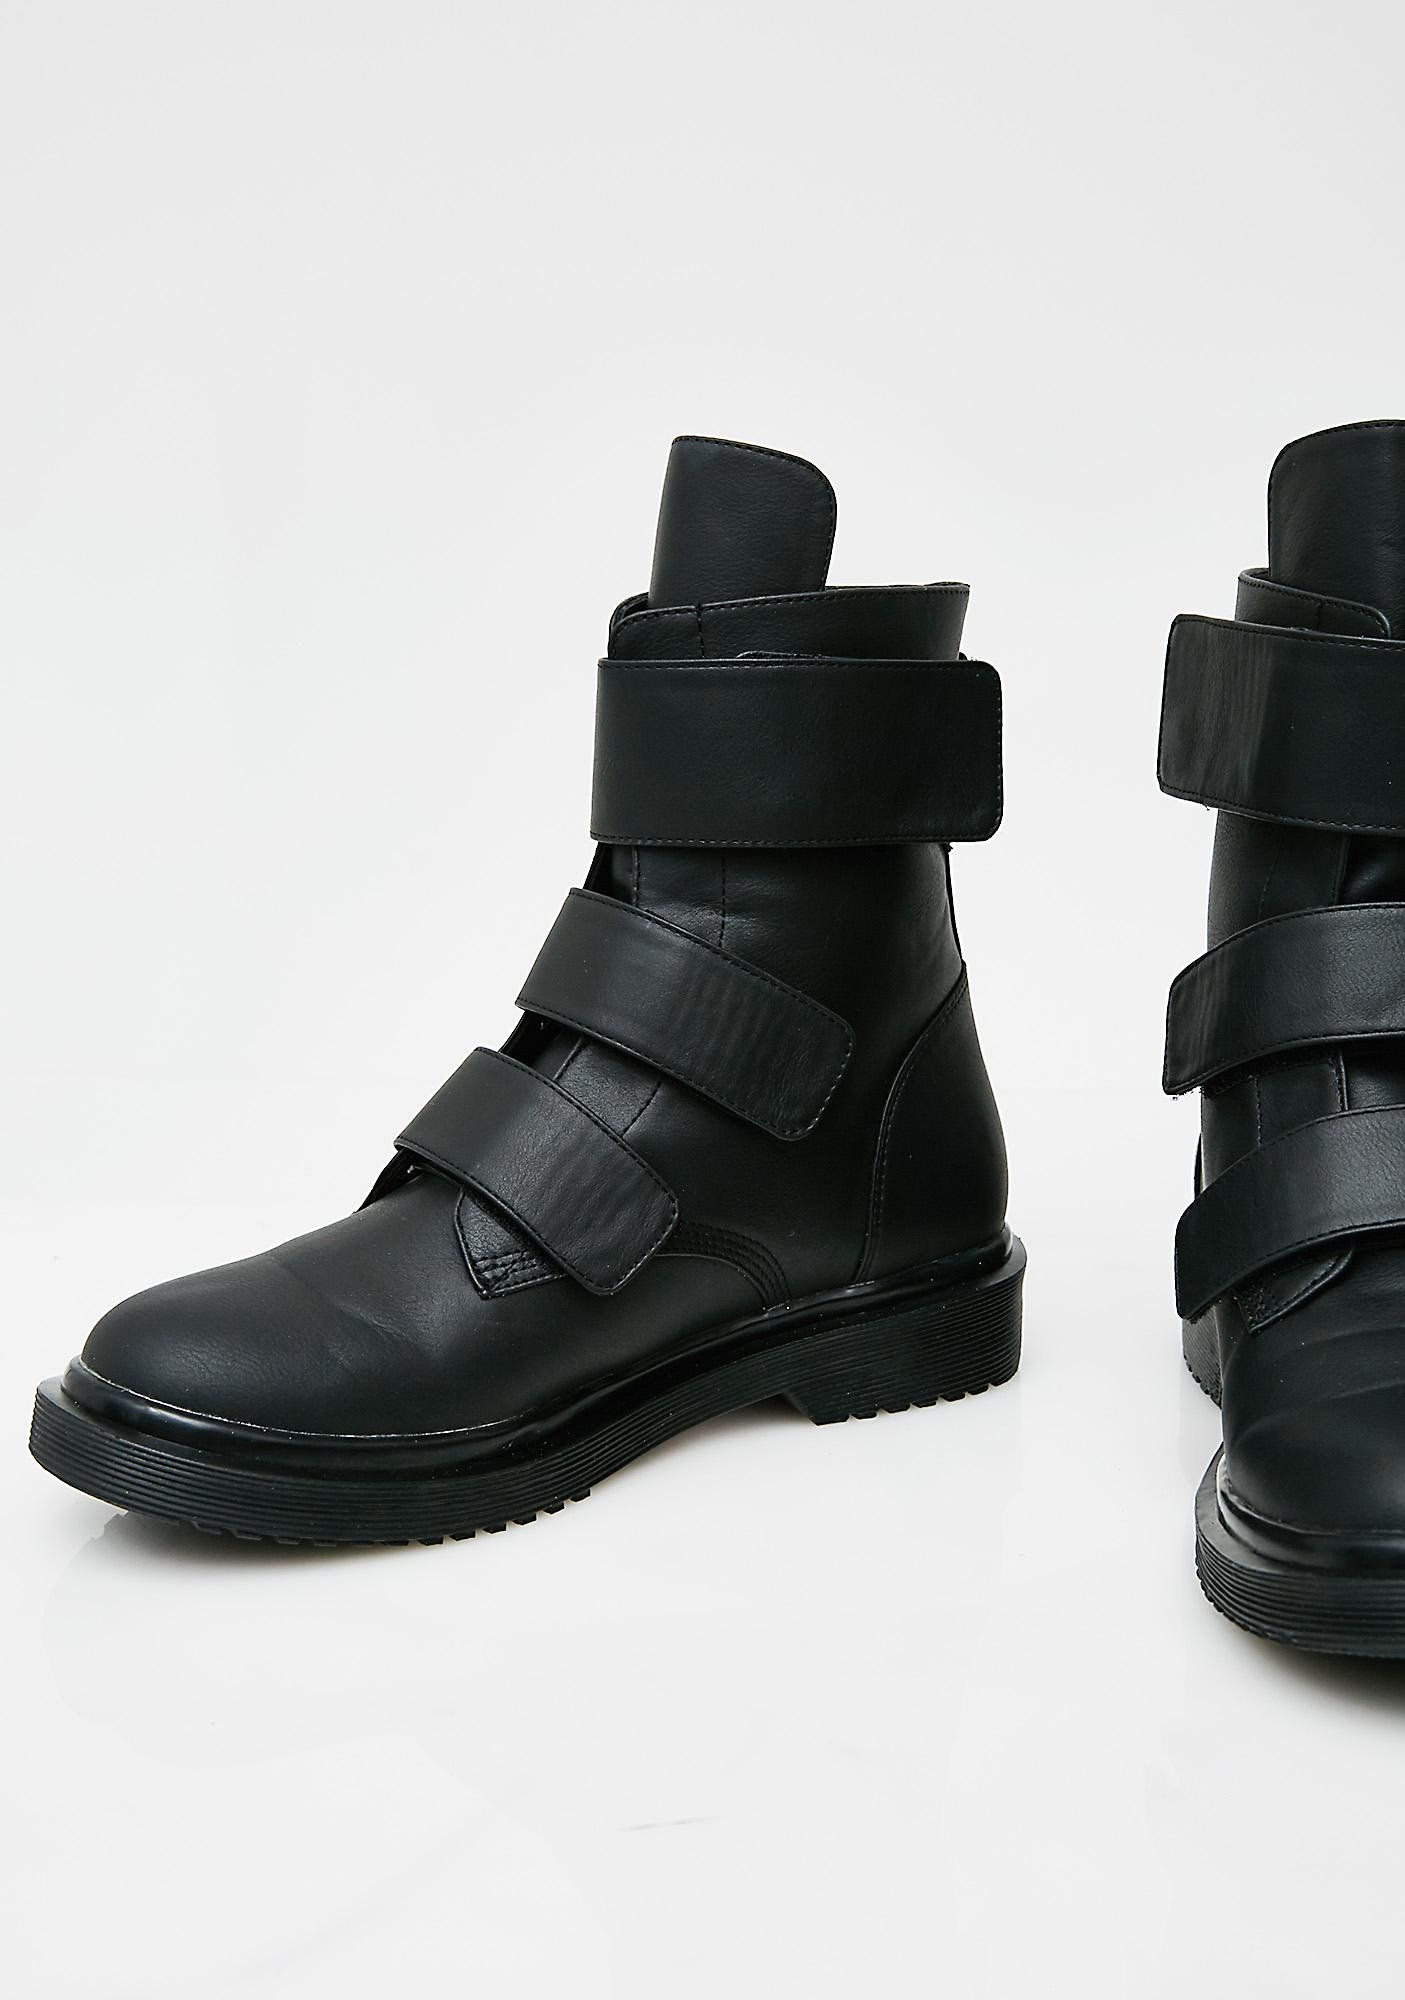 Strap It Down Boots | Boots, Mens